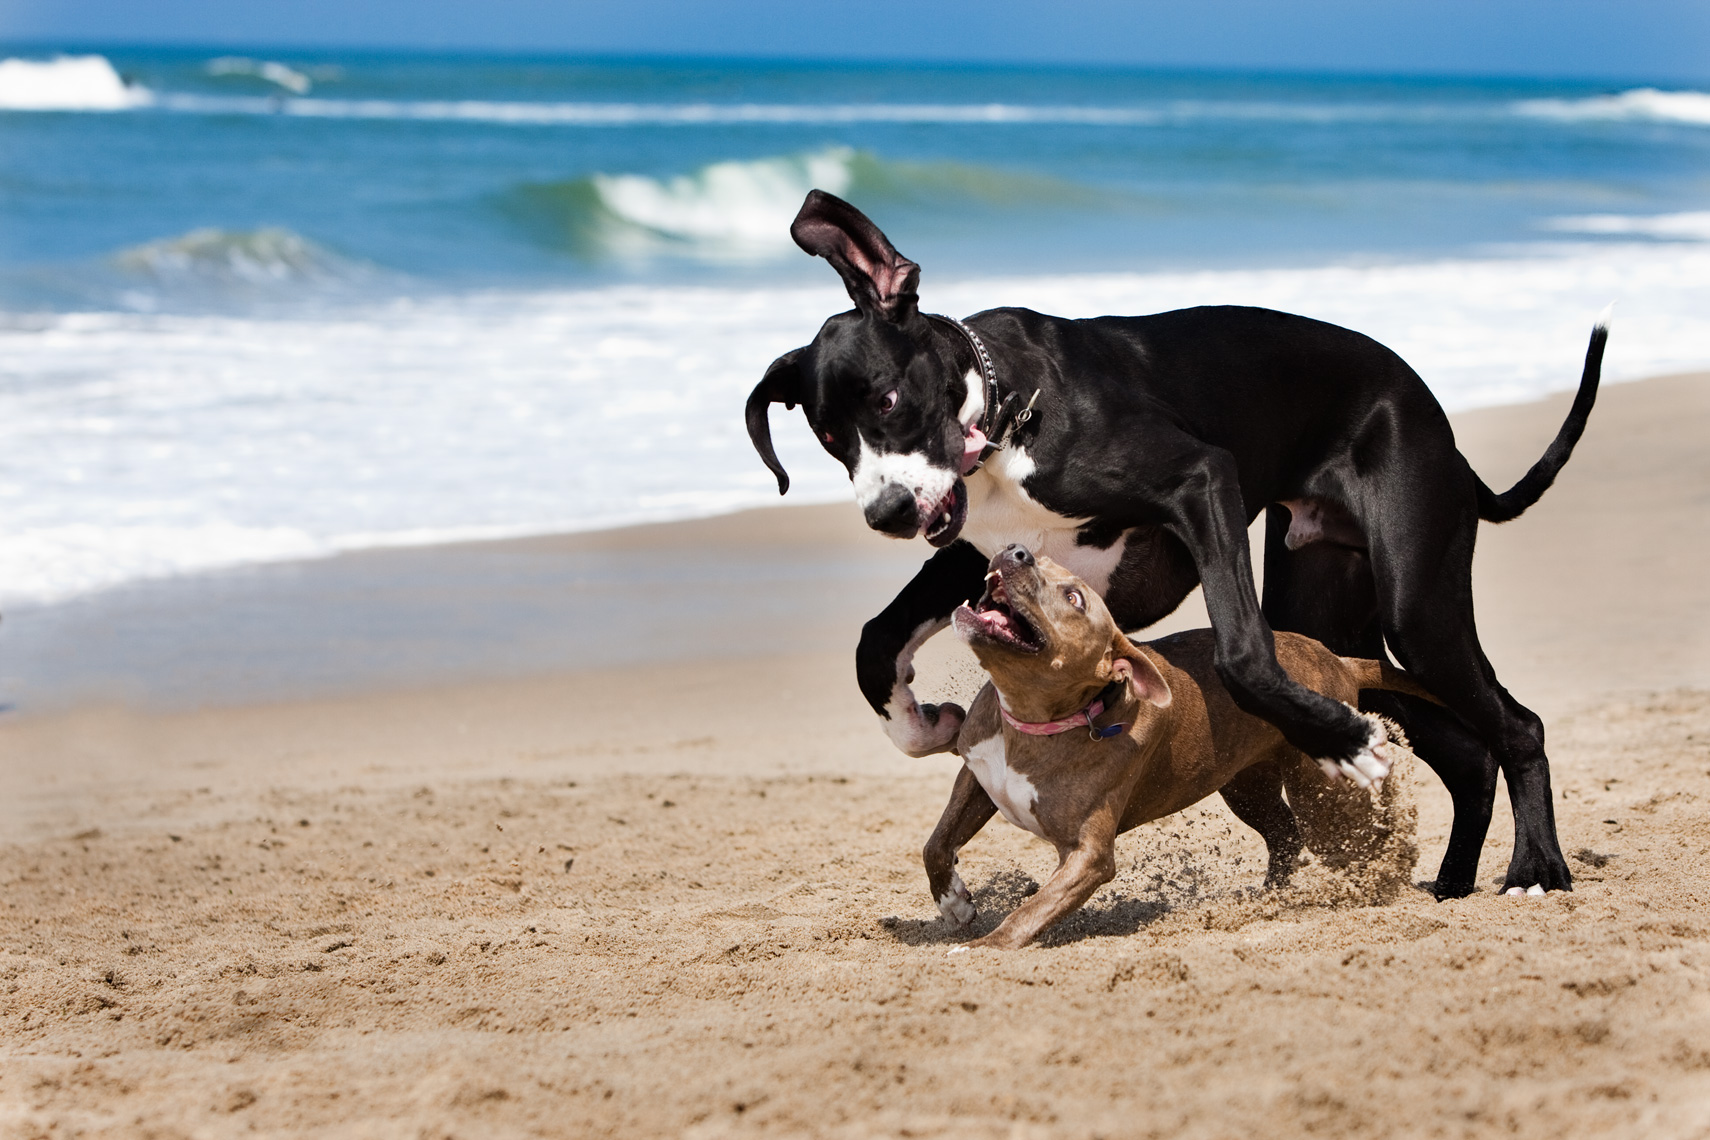 Los Angeles Dog Photography, Michael Brian, Pit Bull plays with Great Dane on beach, Huntington Beach, California Dog Beach, Cesar